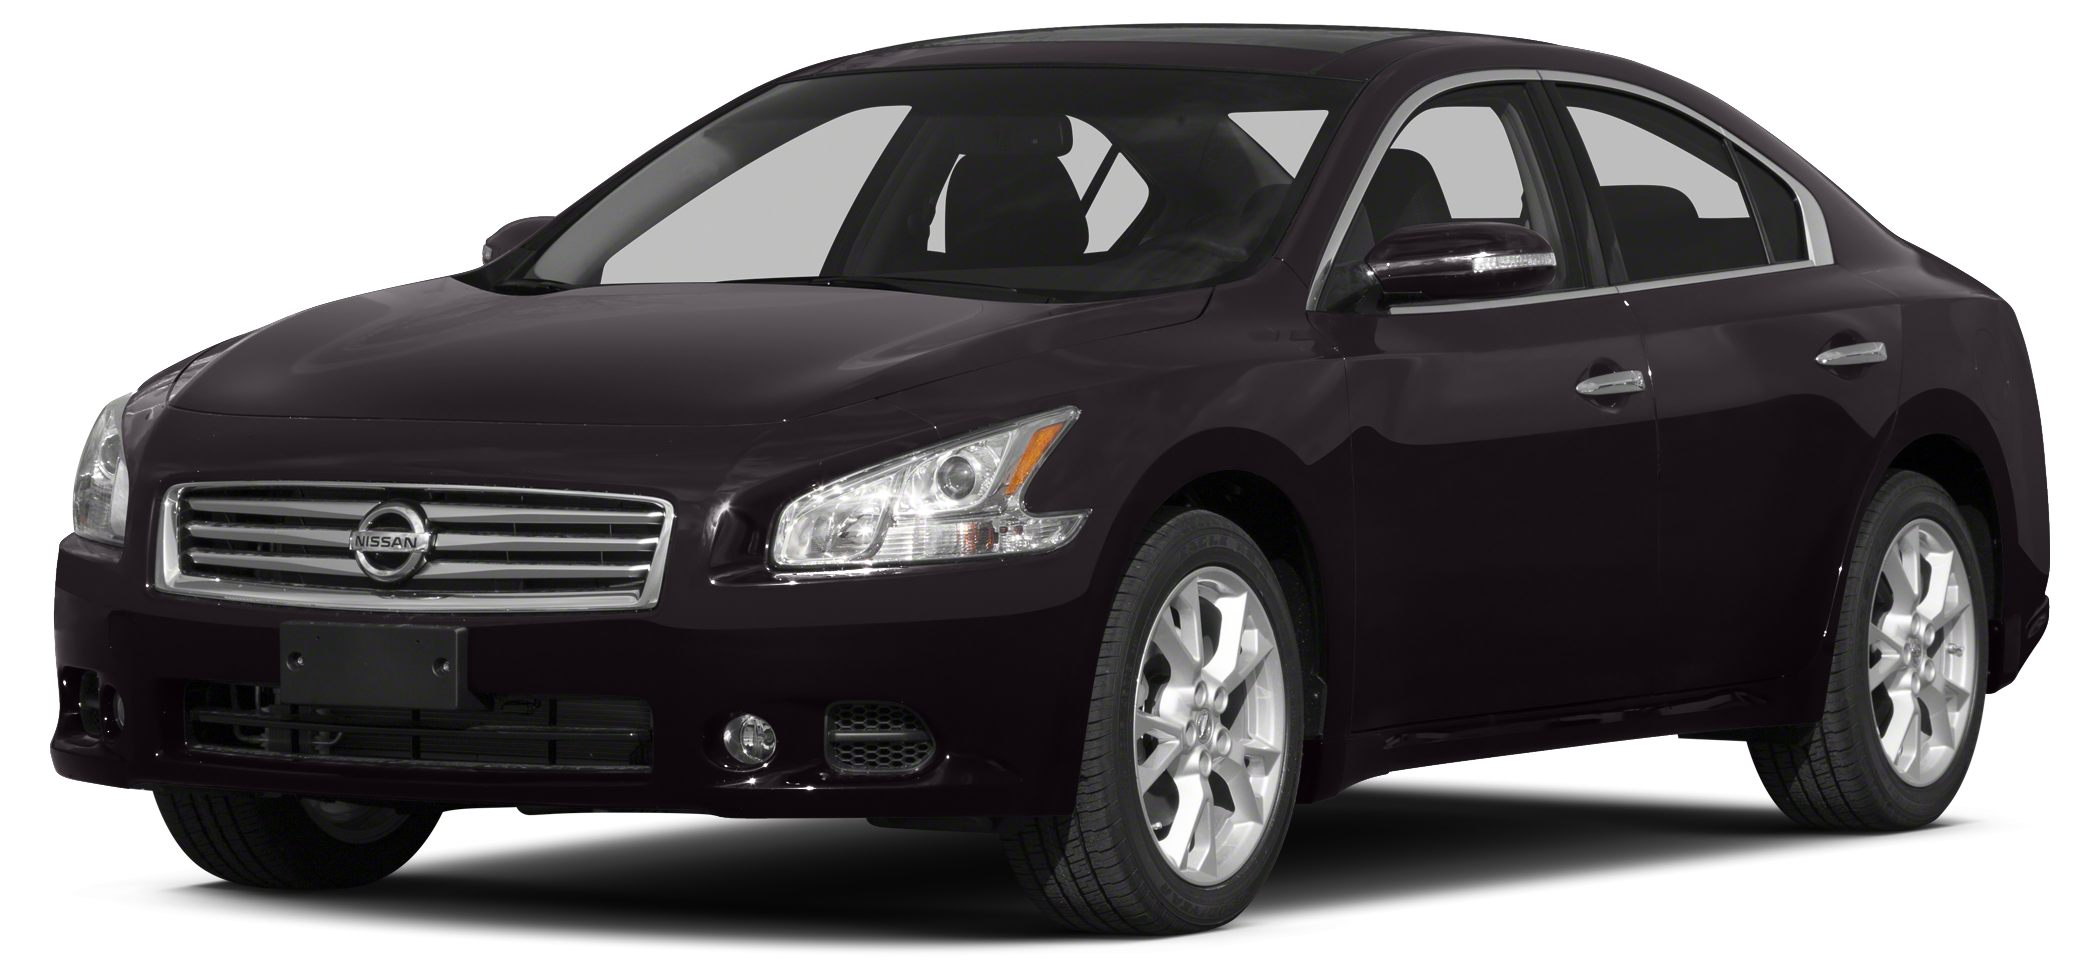 2014 Nissan Maxima 35 S WE SELL OUR VEHICLES AT WHOLESALE PRICES AND STAND BEHIND OUR CARS